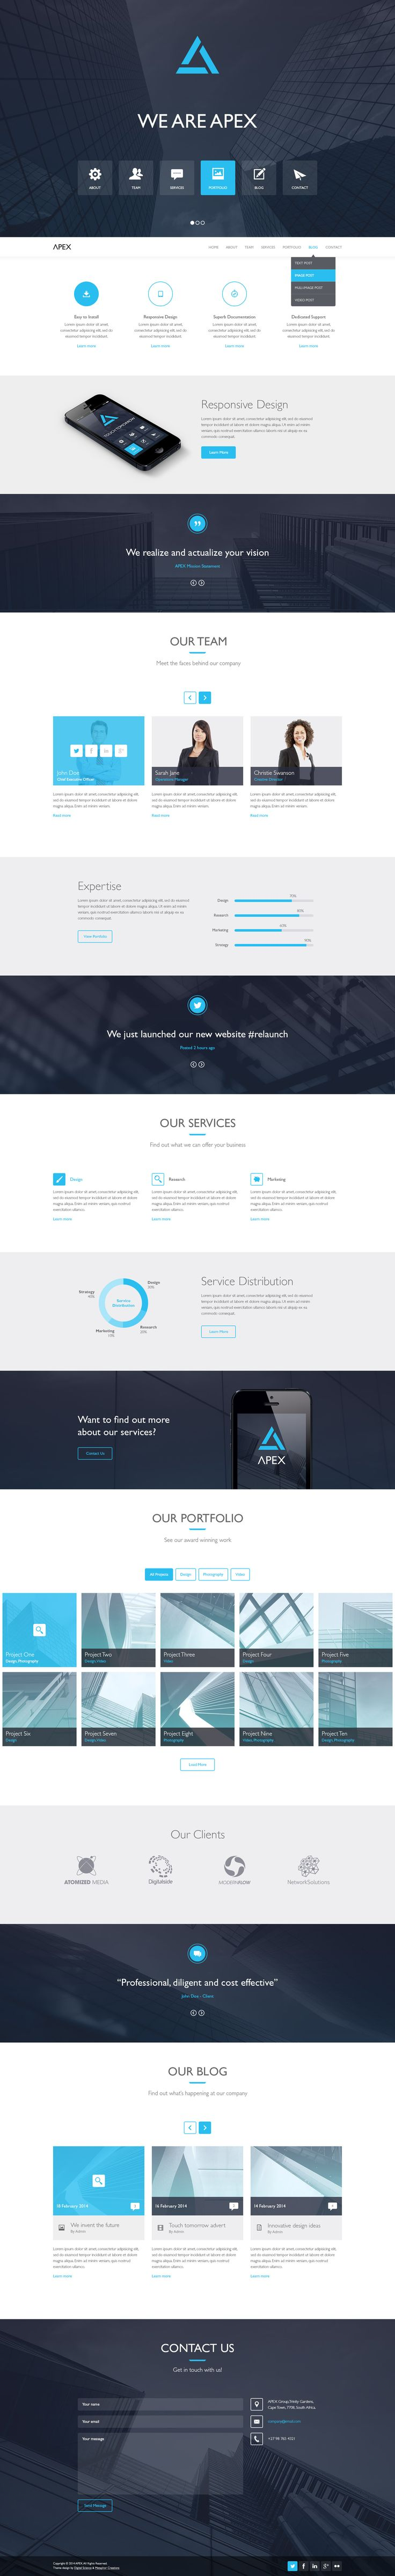 Apex Responsive WordPress Theme - Click here to download ! http://themeforest.net/item/apex-responsive-wordpress-theme/8745522?ref=pxcr